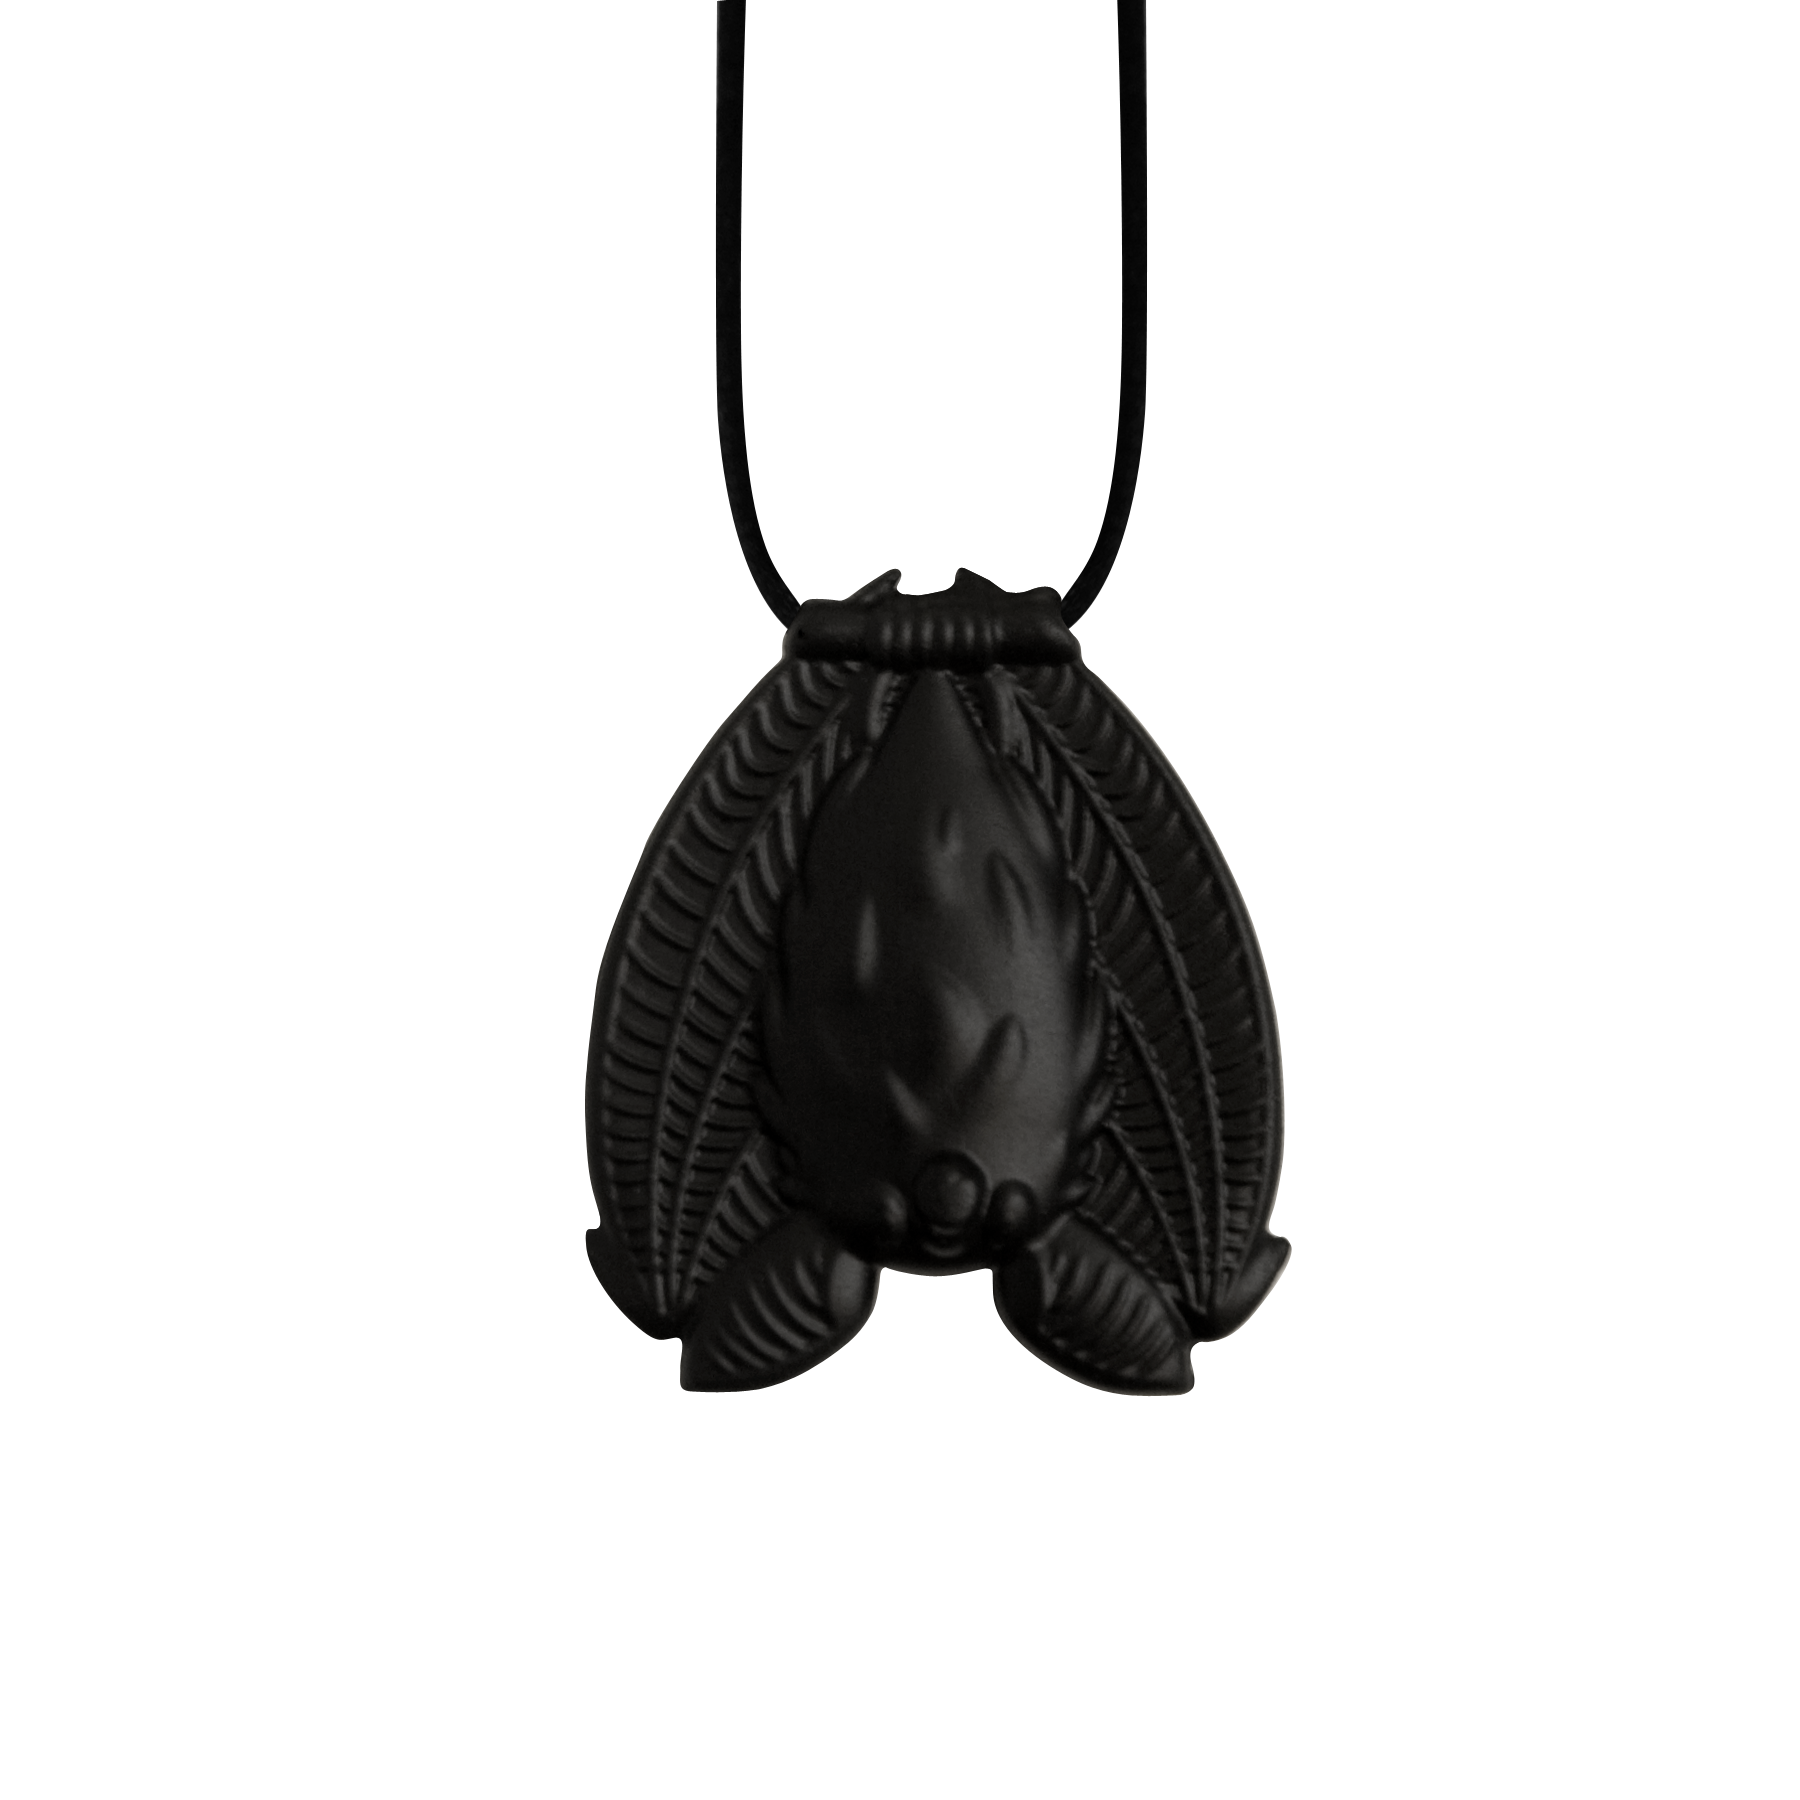 Bat - Black (out of stock)